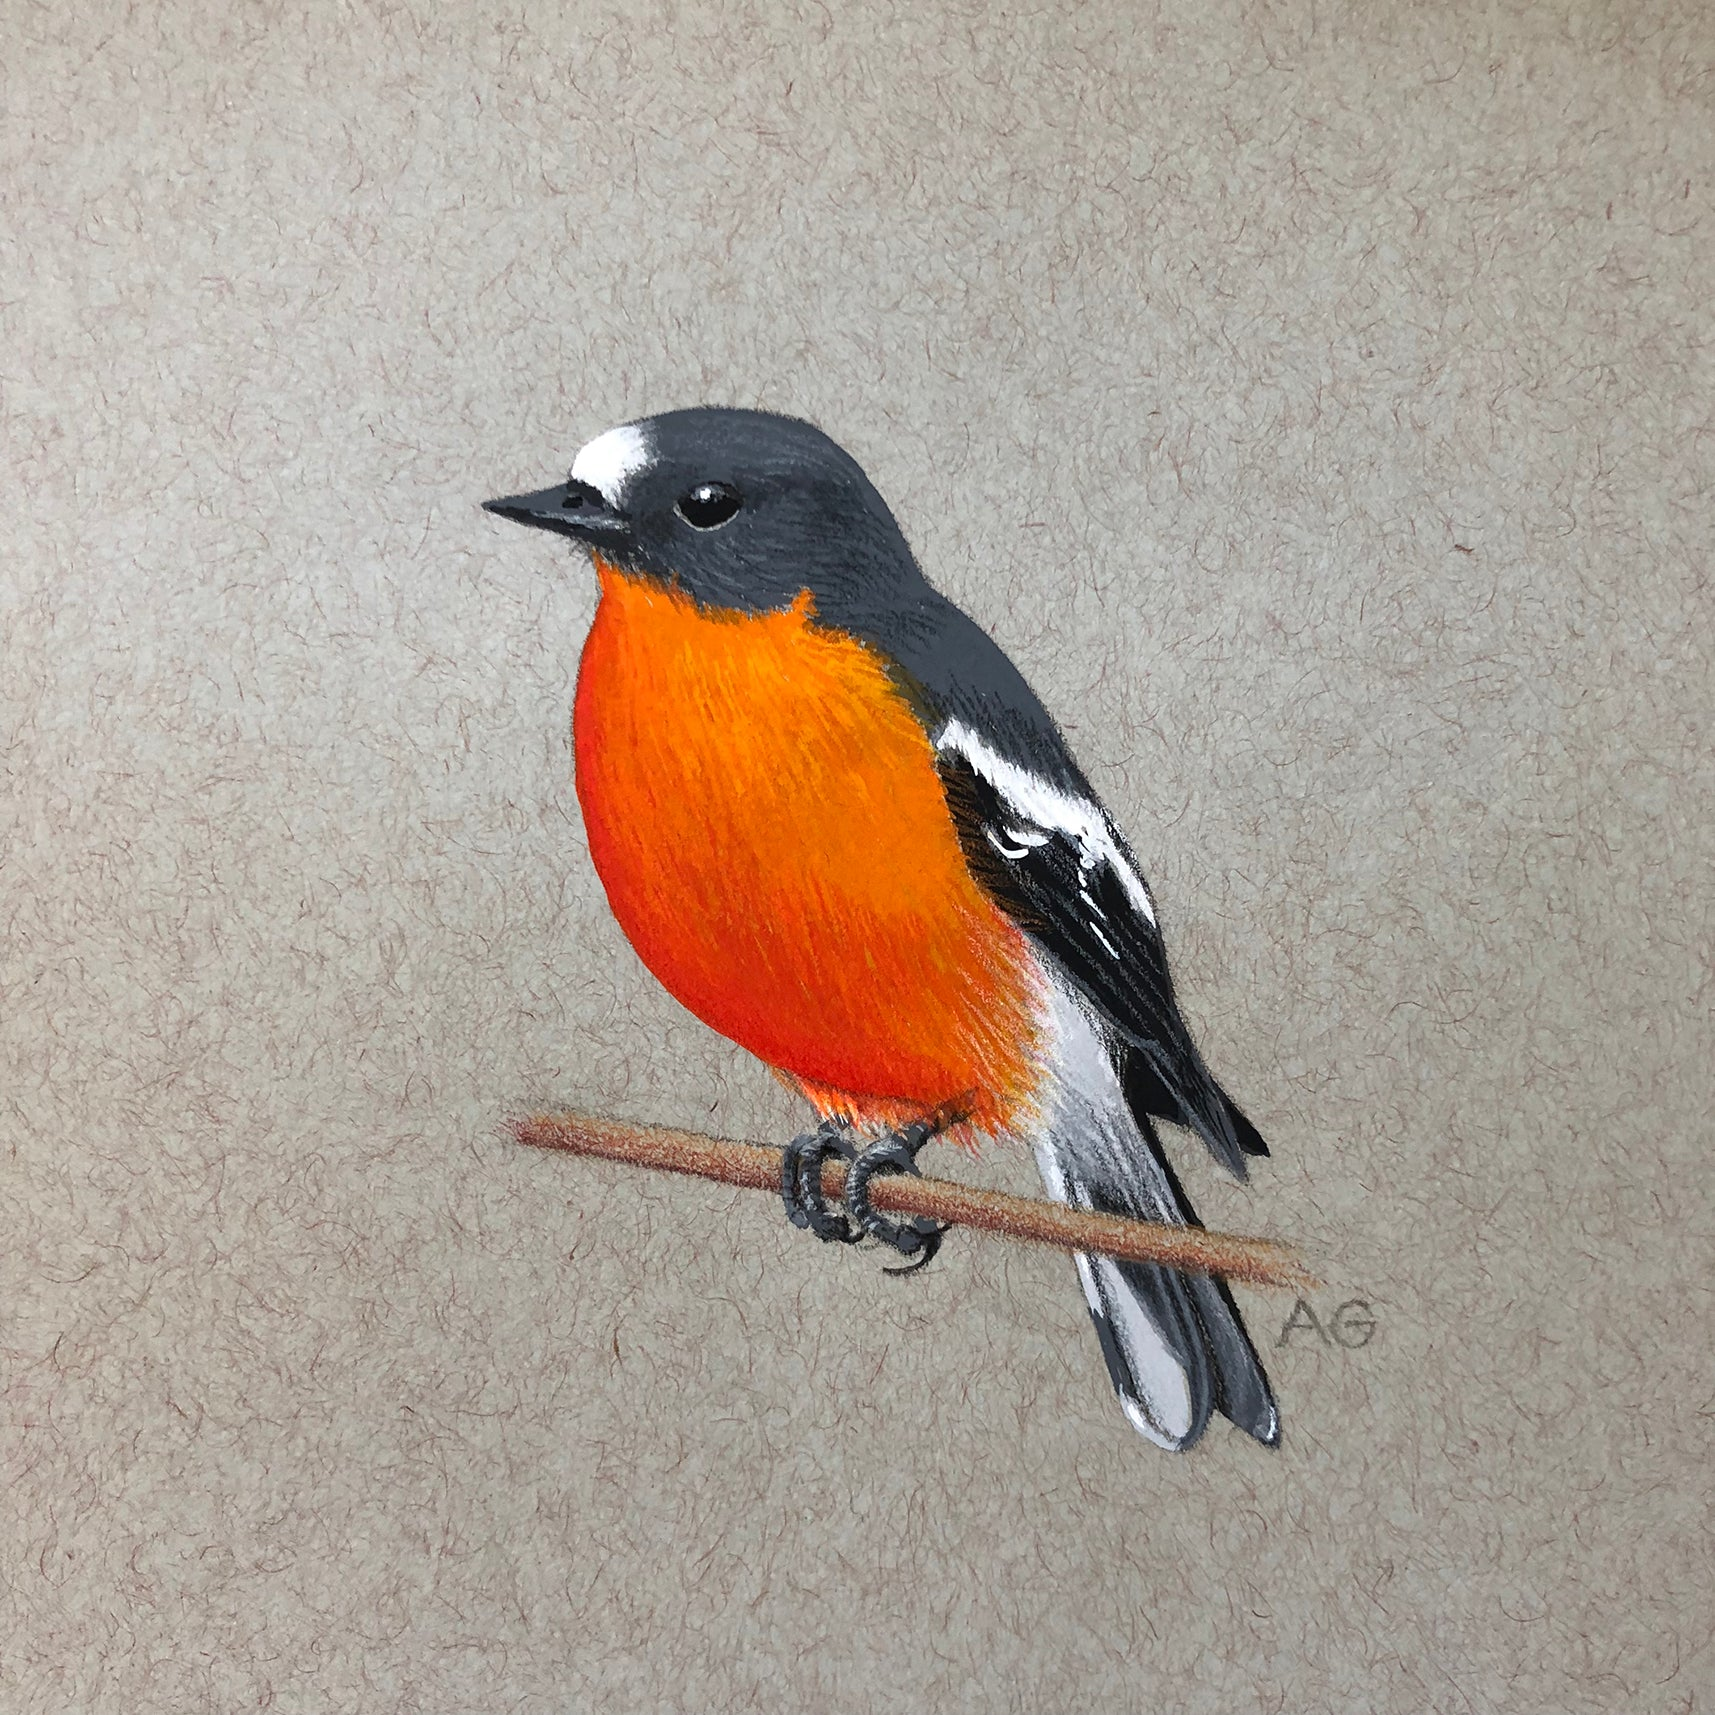 Original Painting of a Flame Robin Watercolour and Gouache by Amanda Gosse